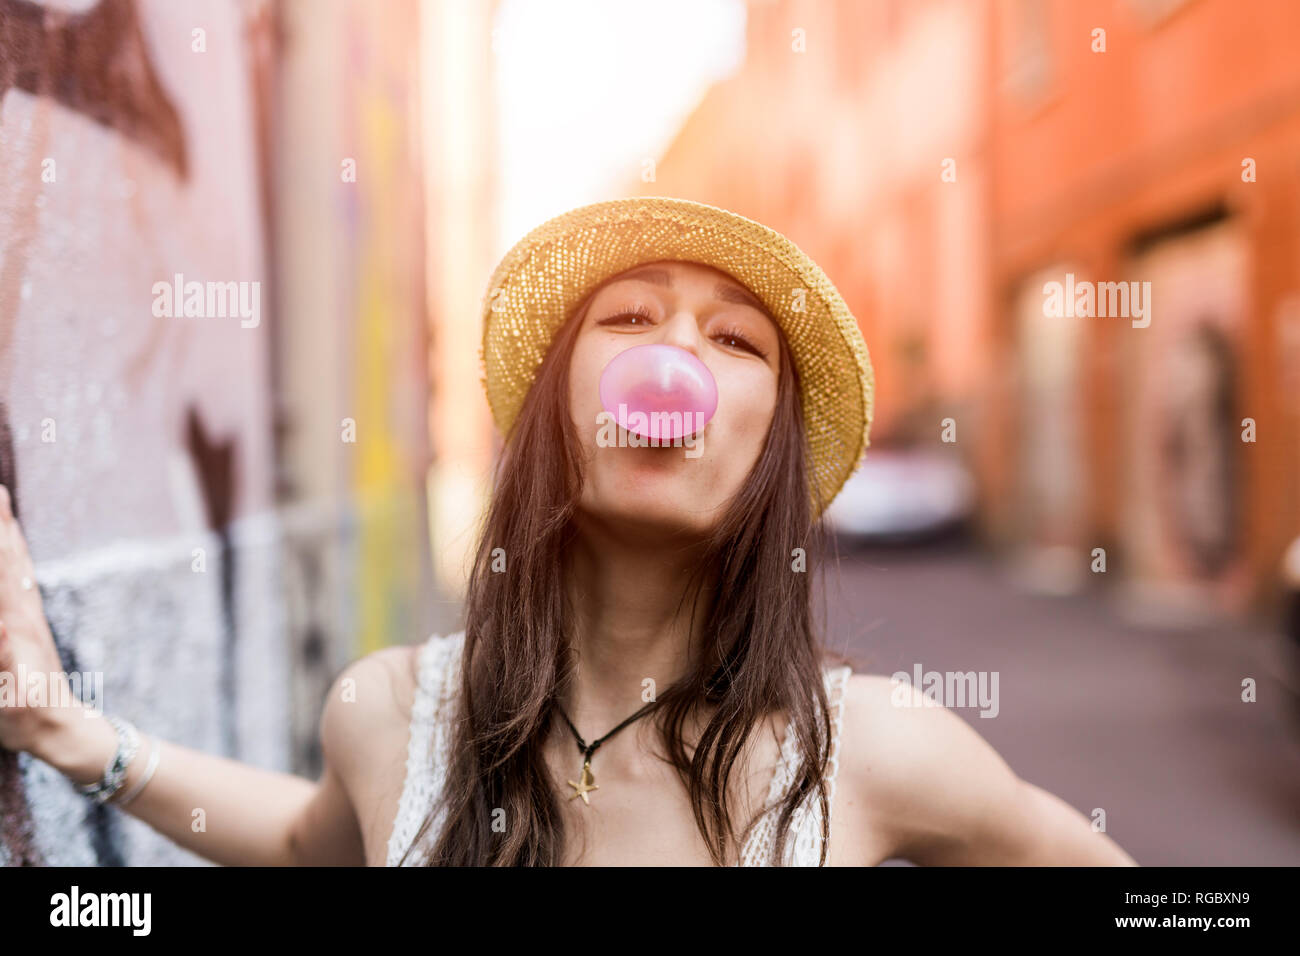 Portrait of young woman blowing bubble gum rose Photo Stock